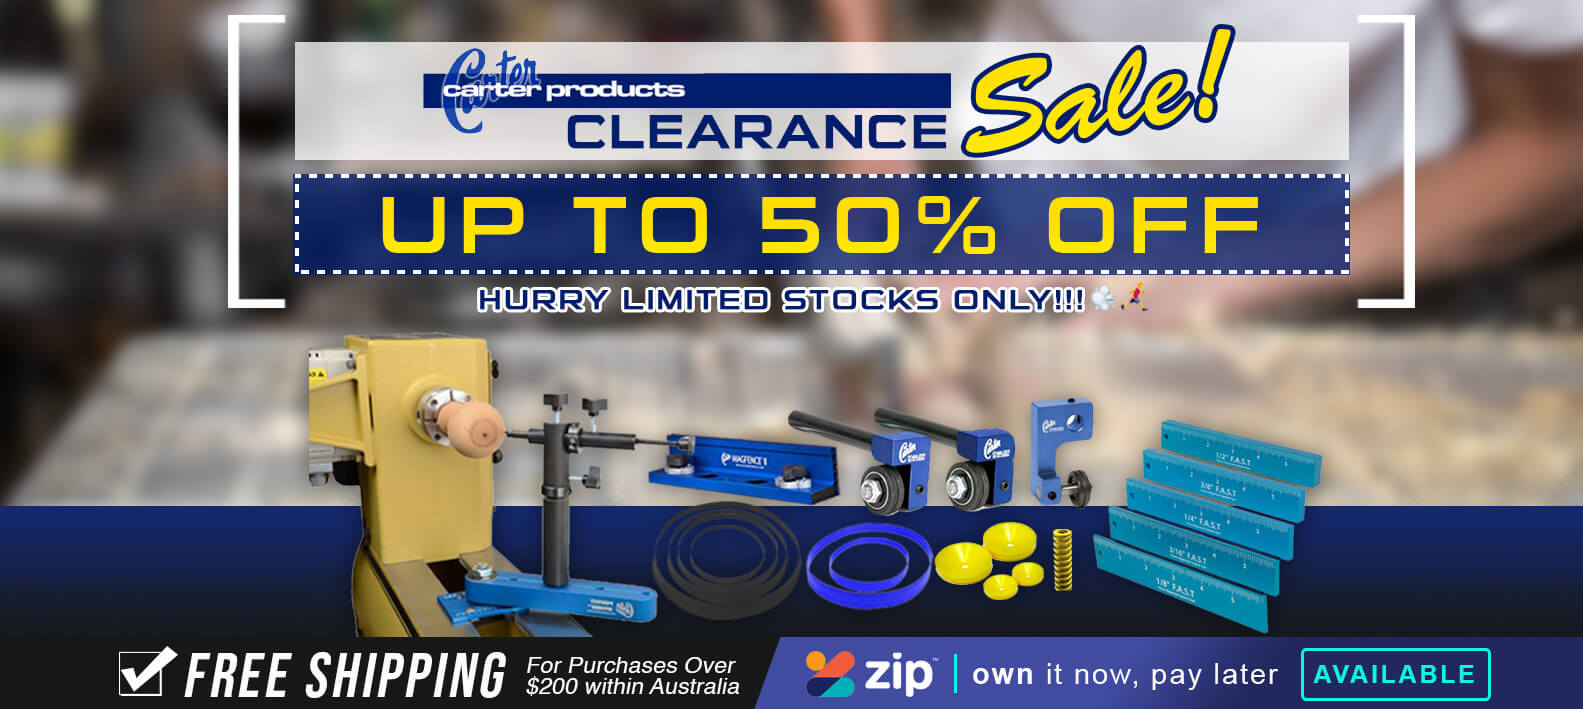 Carter Products Clearance Sale